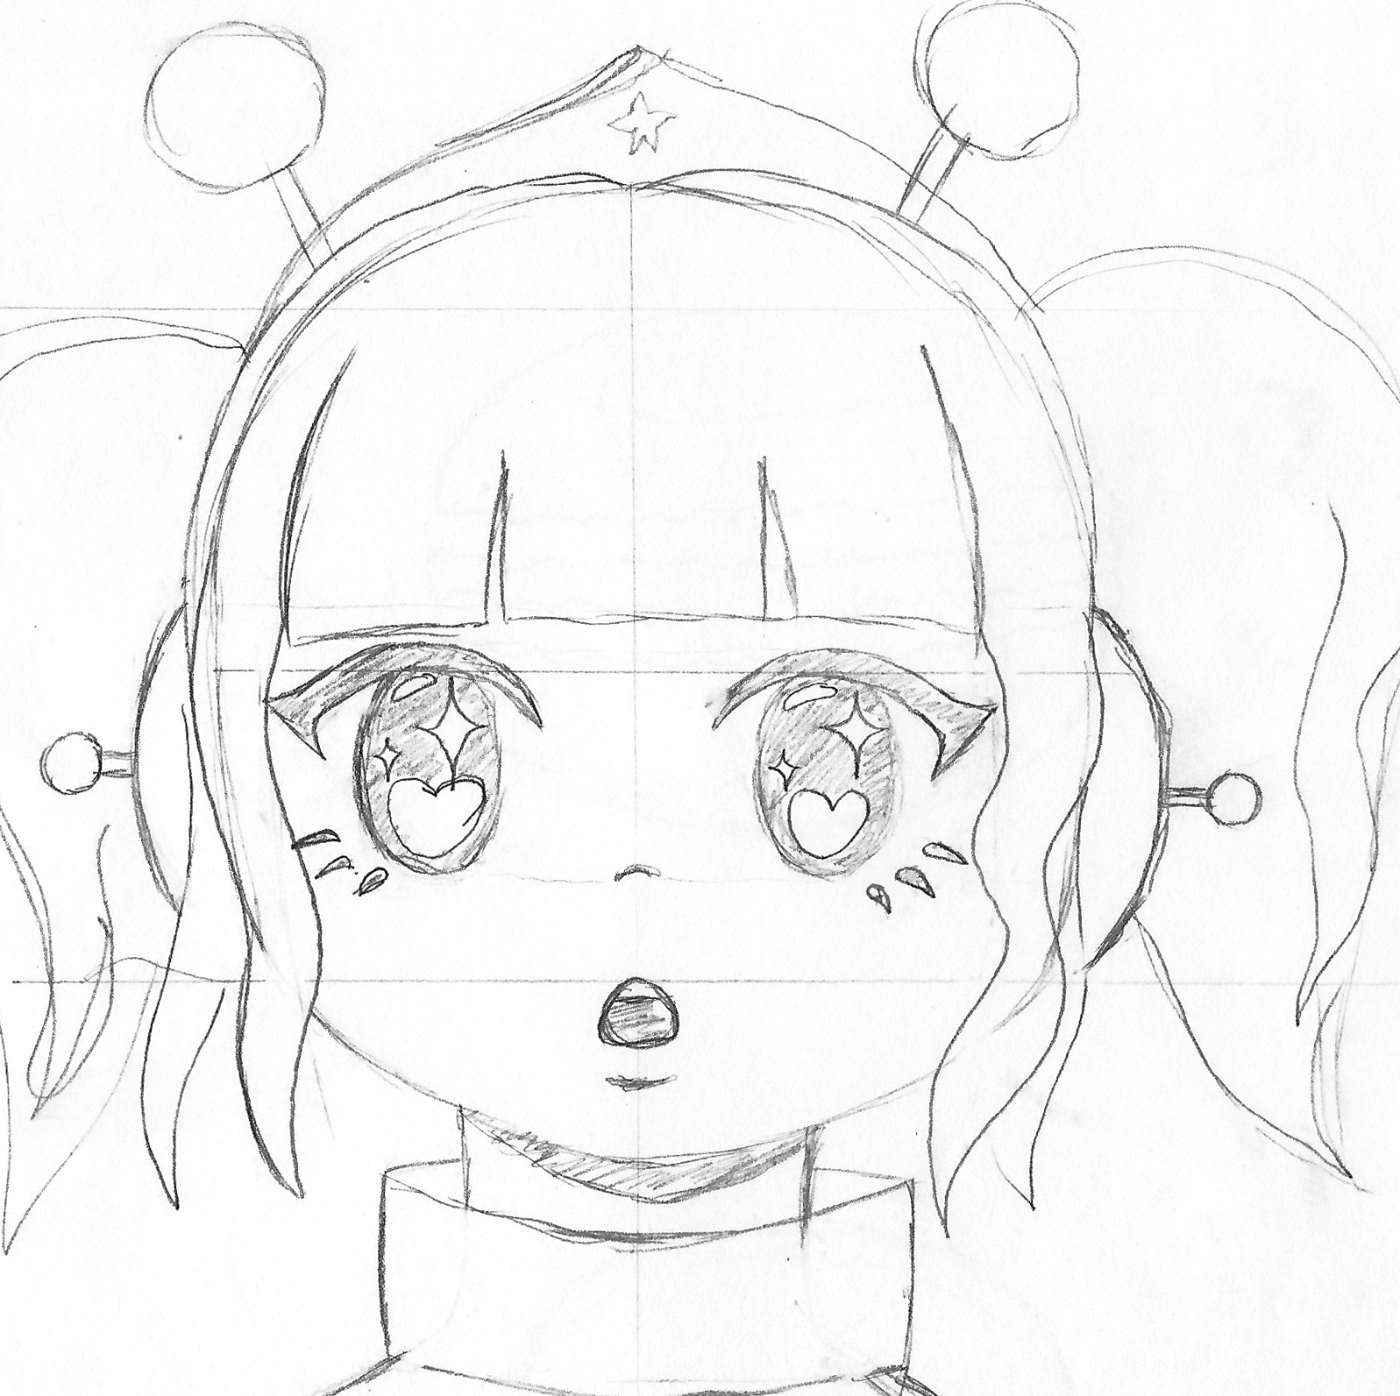 The illustration started out as a traditional sketch that, while quite rough, could be edited digitally. Many features on the girl were later removed or altered, like the eyelashes and antenna were replaced with stars and a bow.